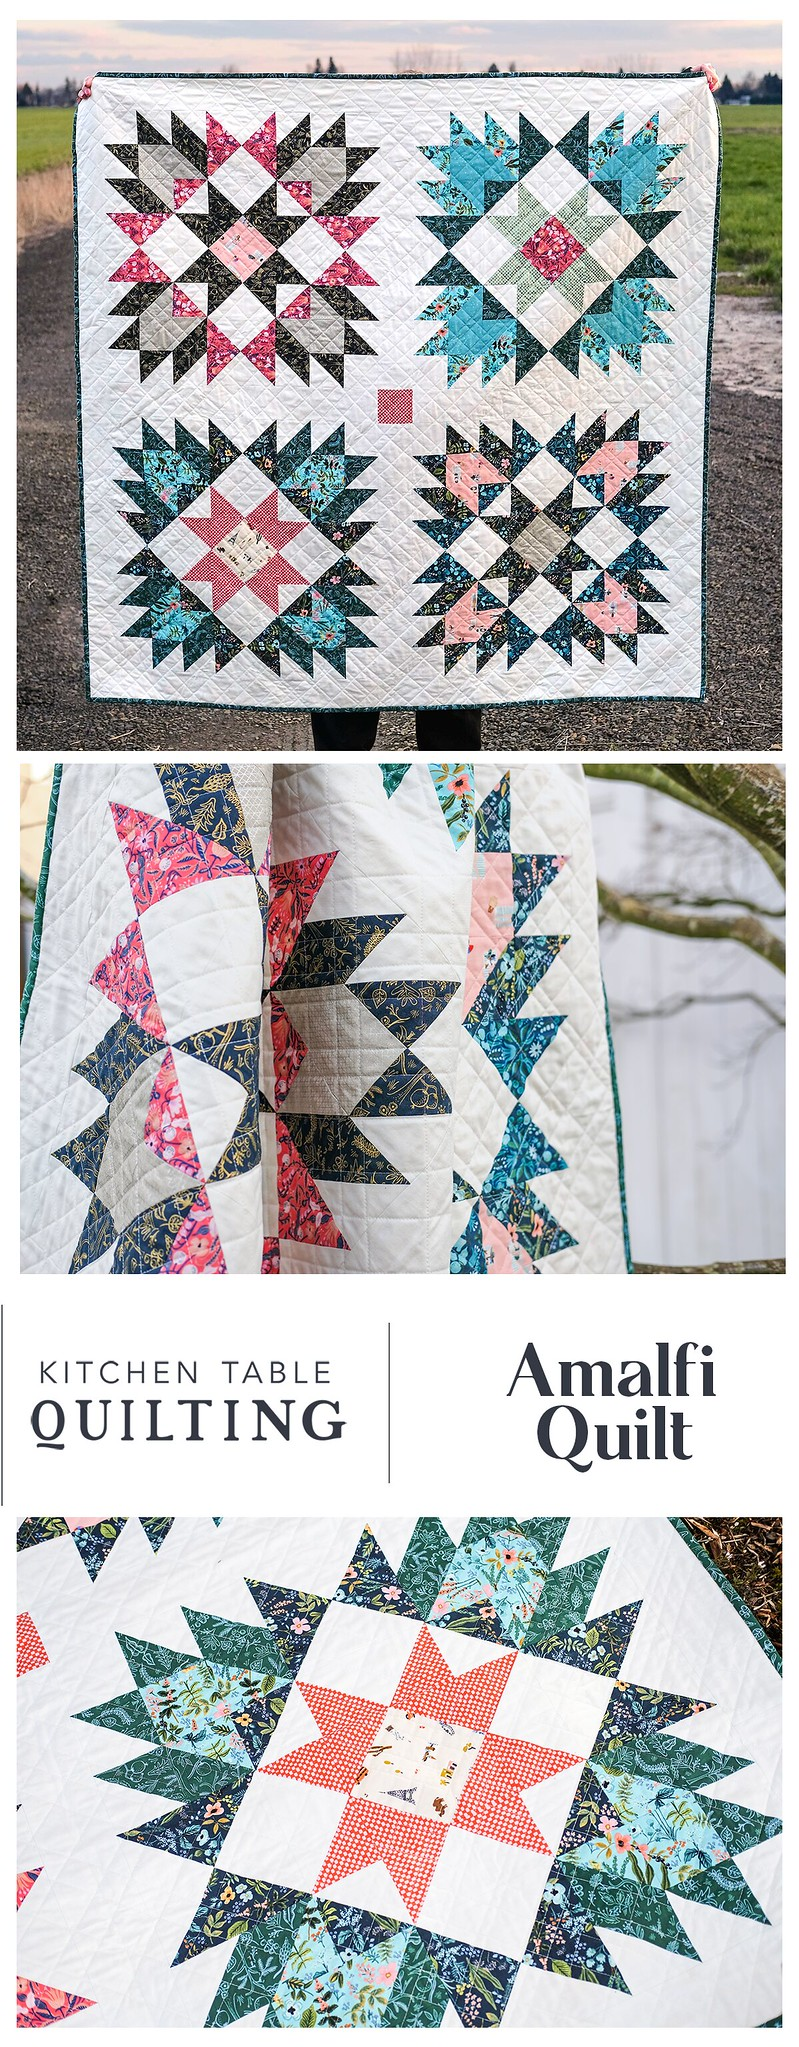 Amalfi Quilt - Kitchen Table Quilting